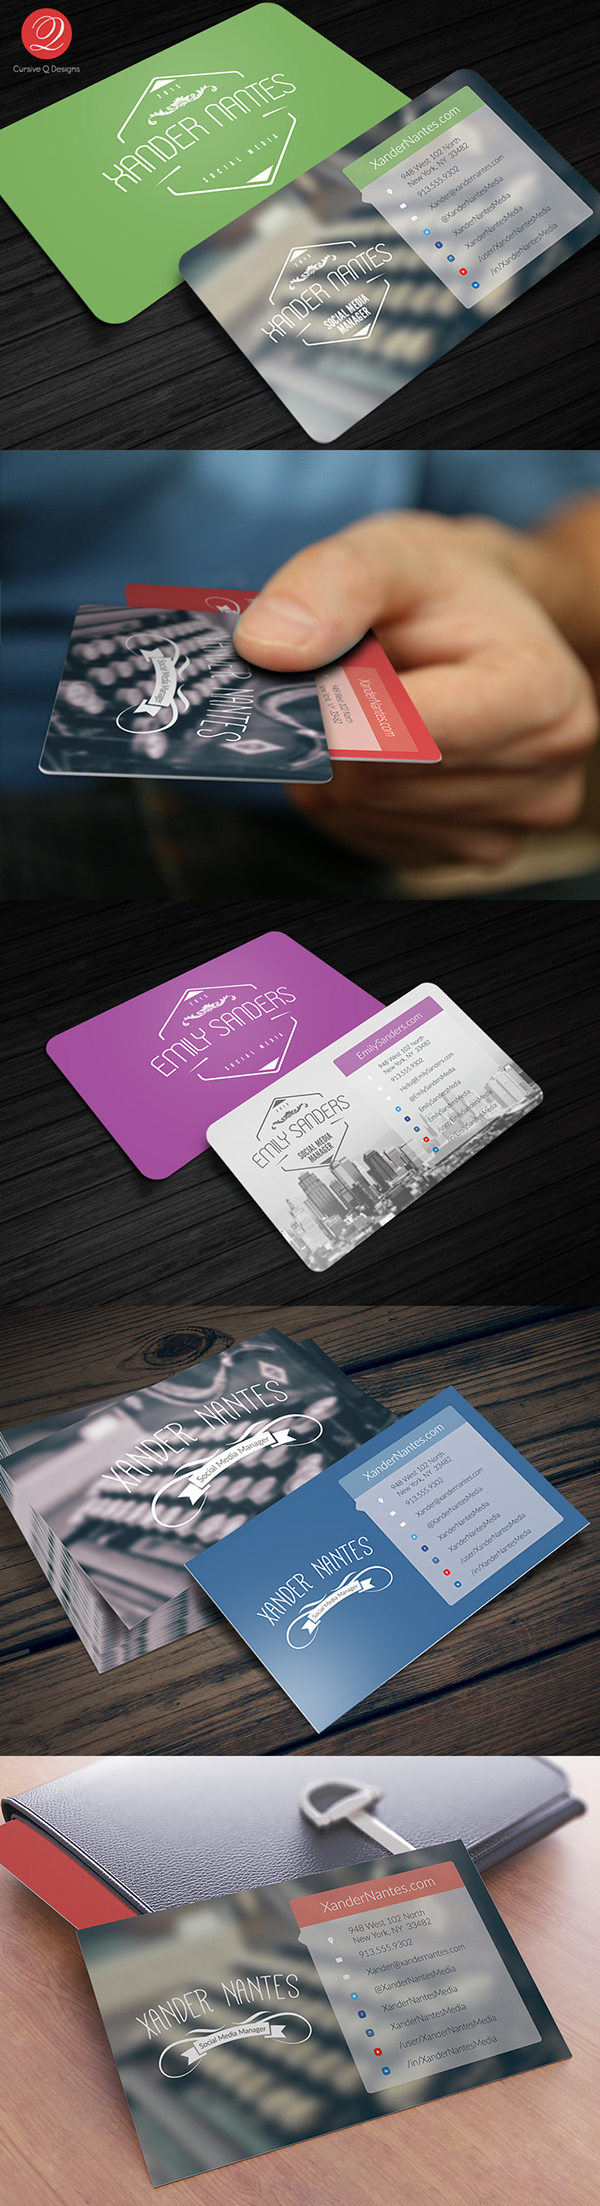 Social Box Social Media Business Card PSD Template On Behance - Social media business card template free